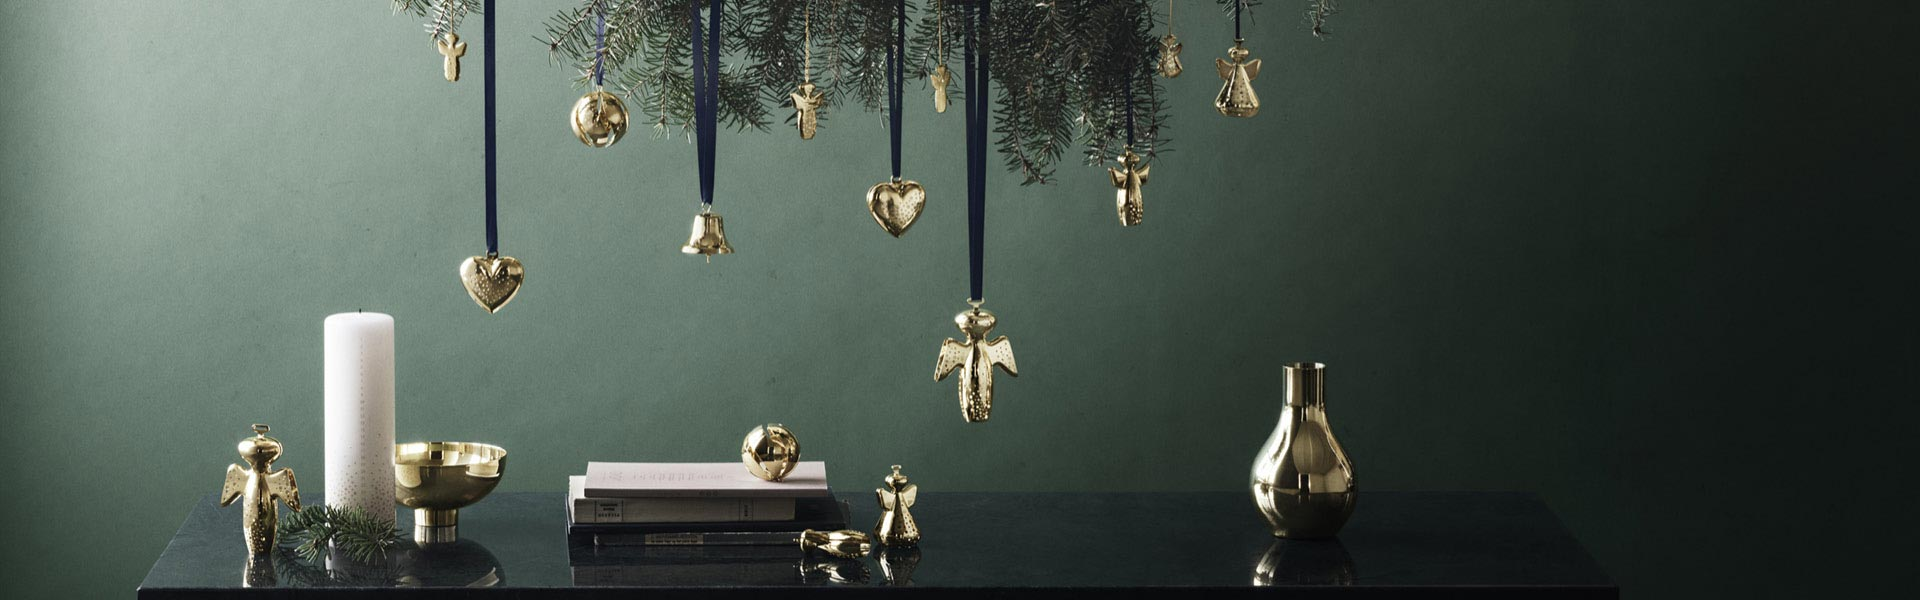 Georg-Jensen-Christmas-desktop-01.jpg